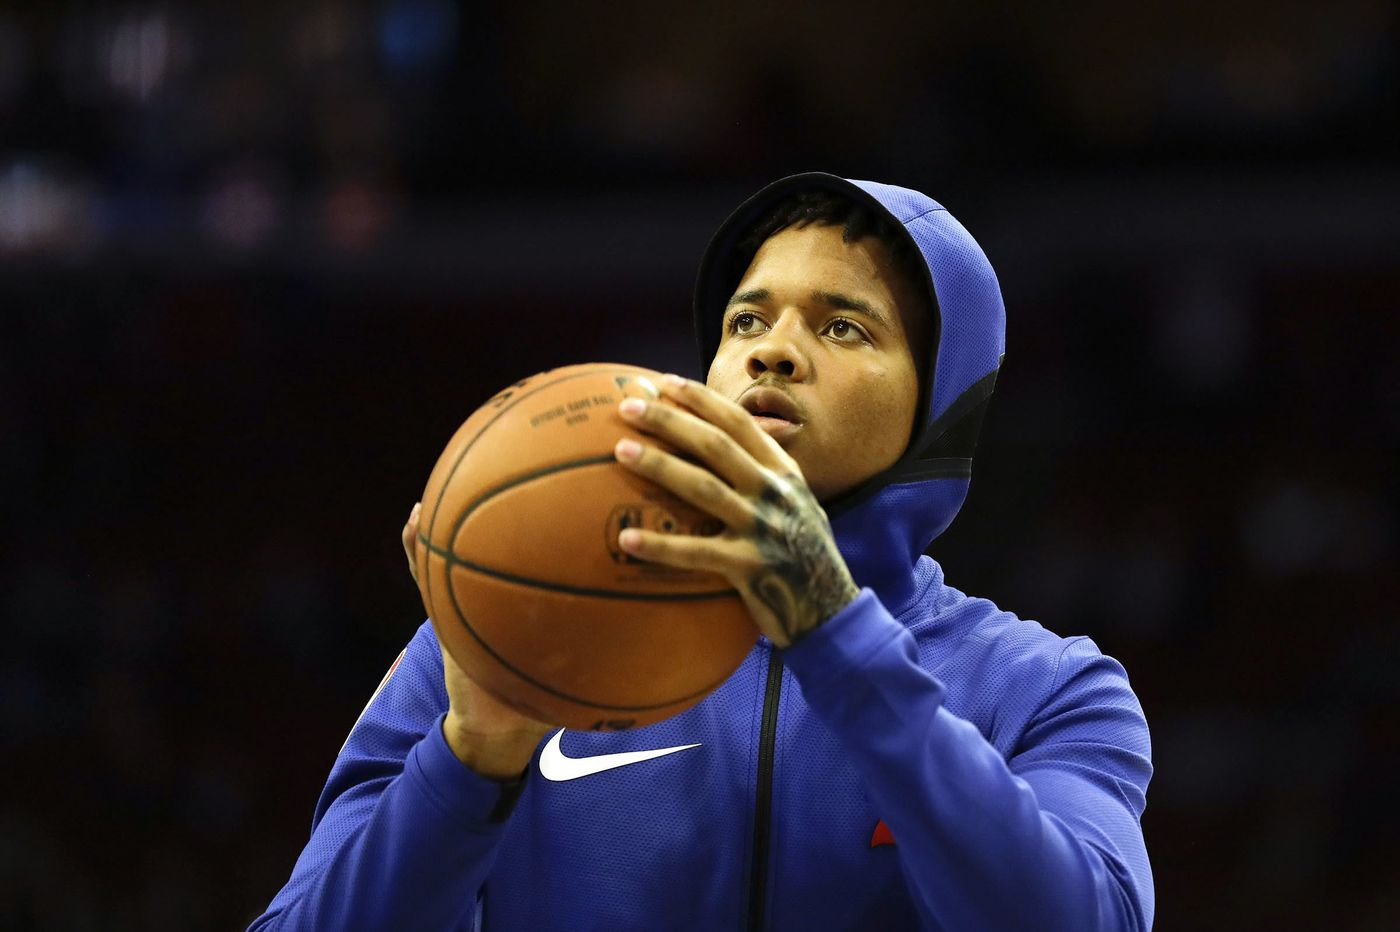 Markelle Fultz had no value and the Sixers didn't care. That says it all. | David Murphy